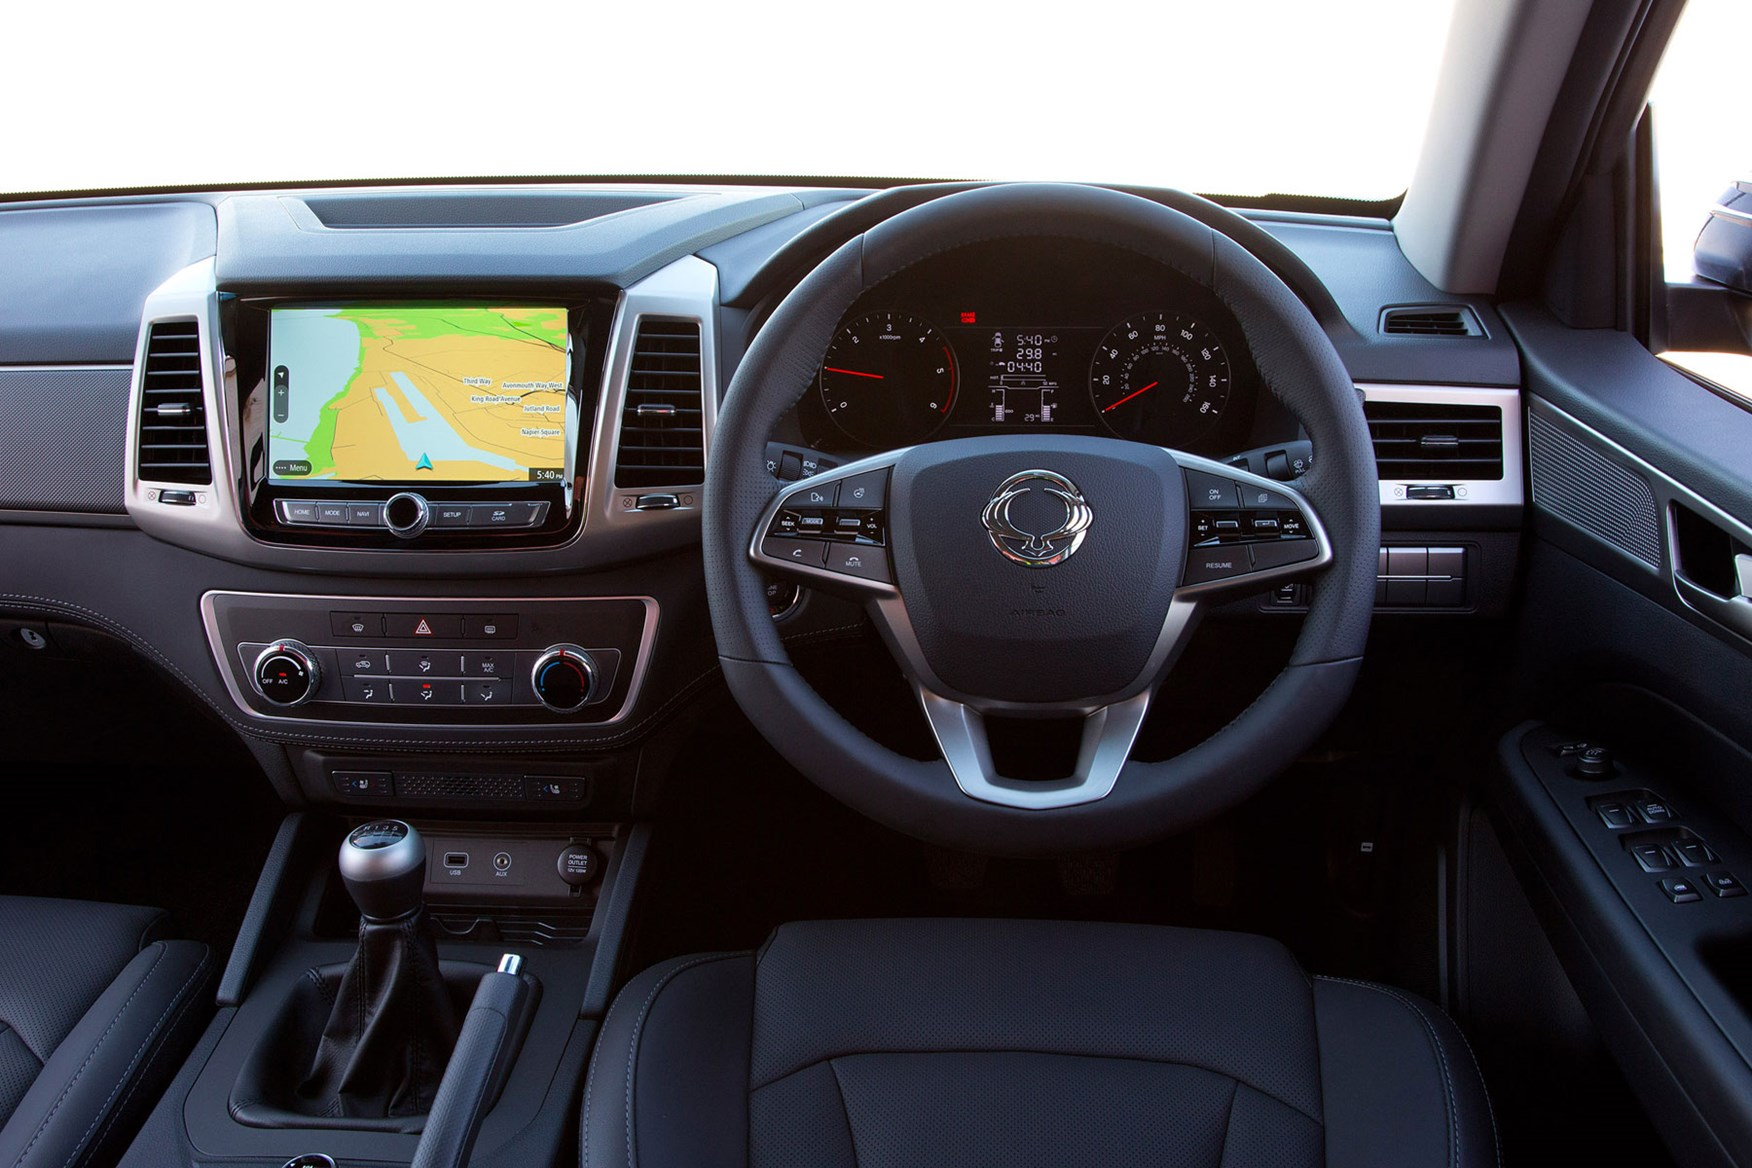 SsangYong Musso (2018-on) review, cab interior with large touchscreen infotainment system